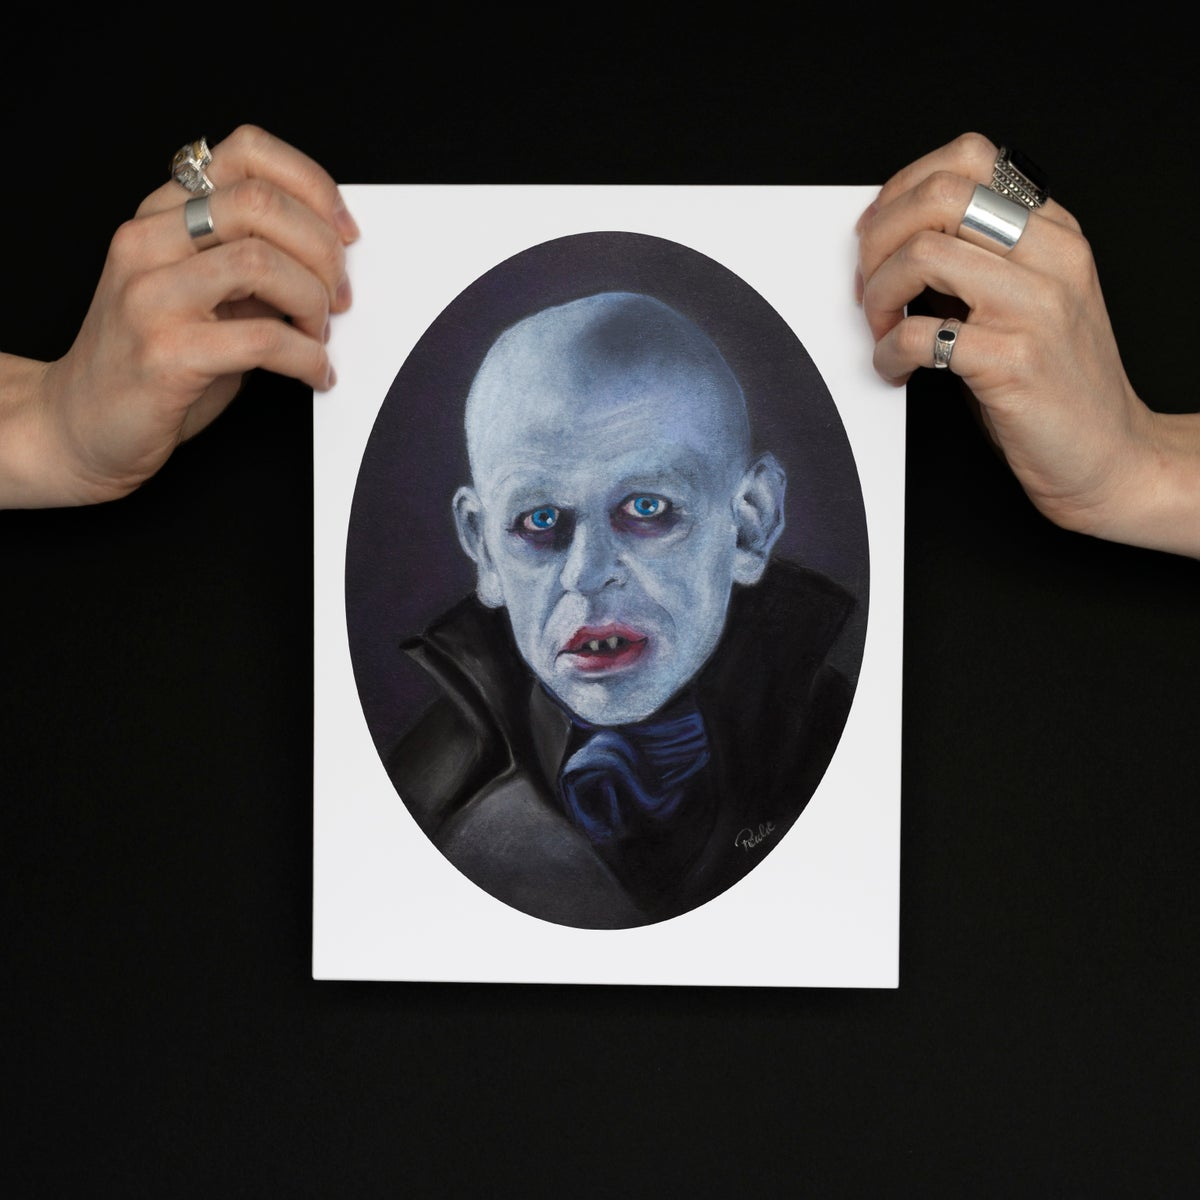 NOSFERATU THE VAMPYRE LIMITED EDITION GICLÉE PRINT